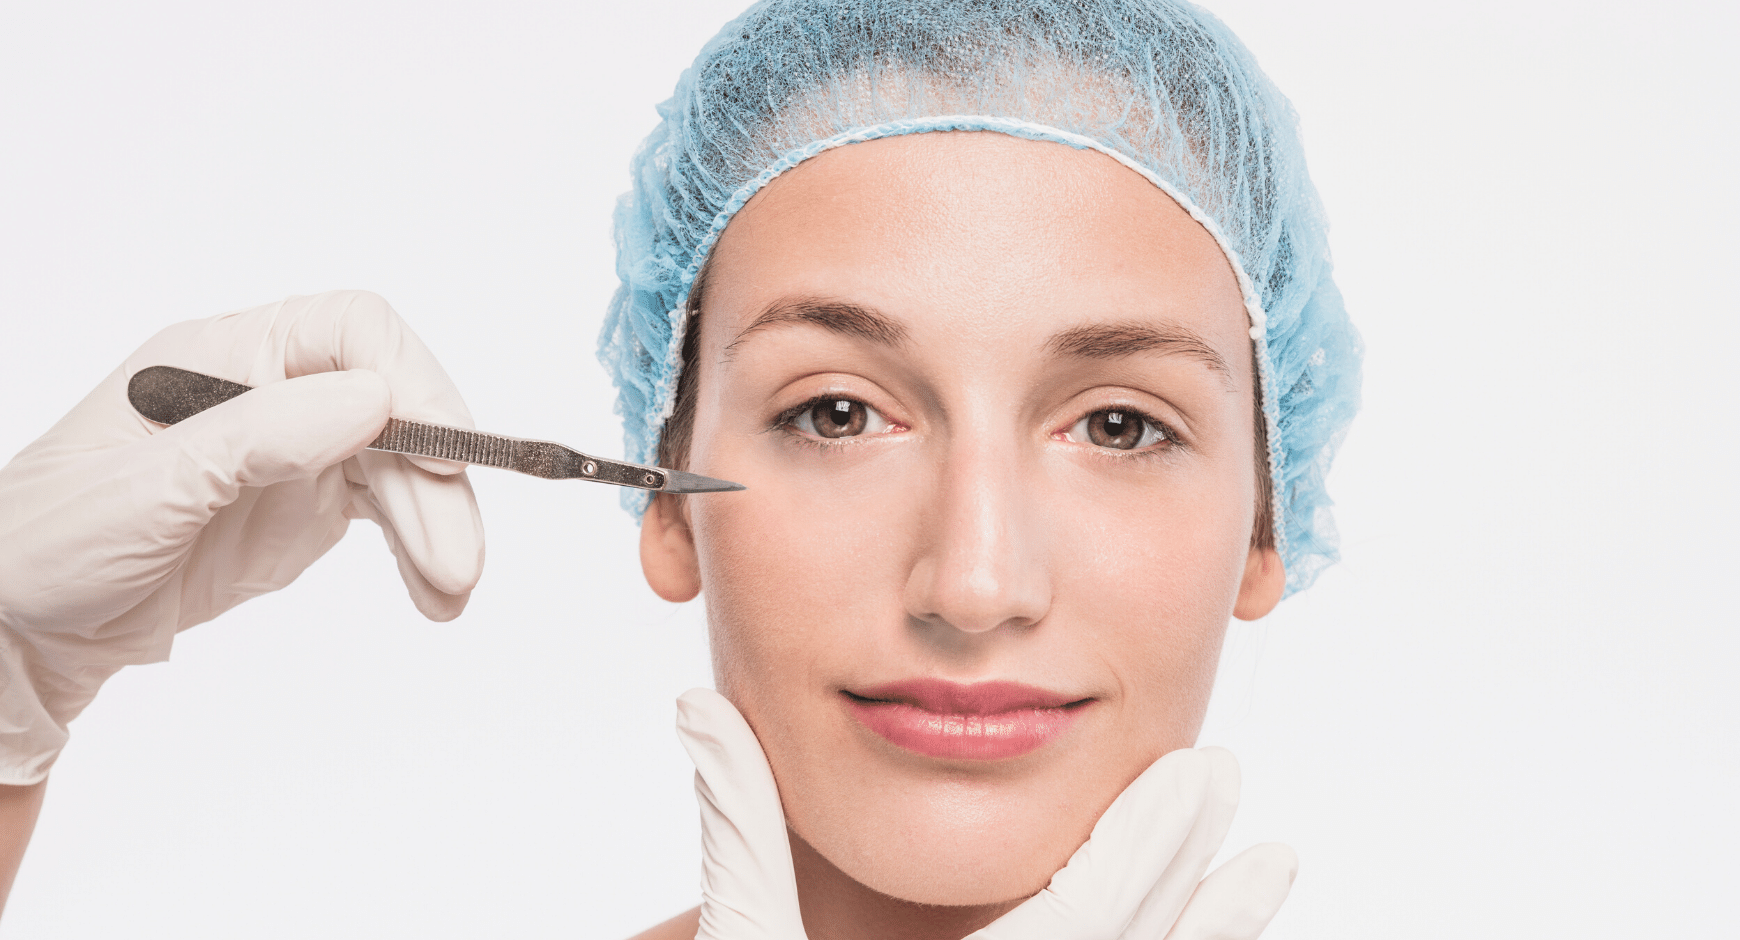 All you need to know about the miracles of Plastic and Reconstructive surgery